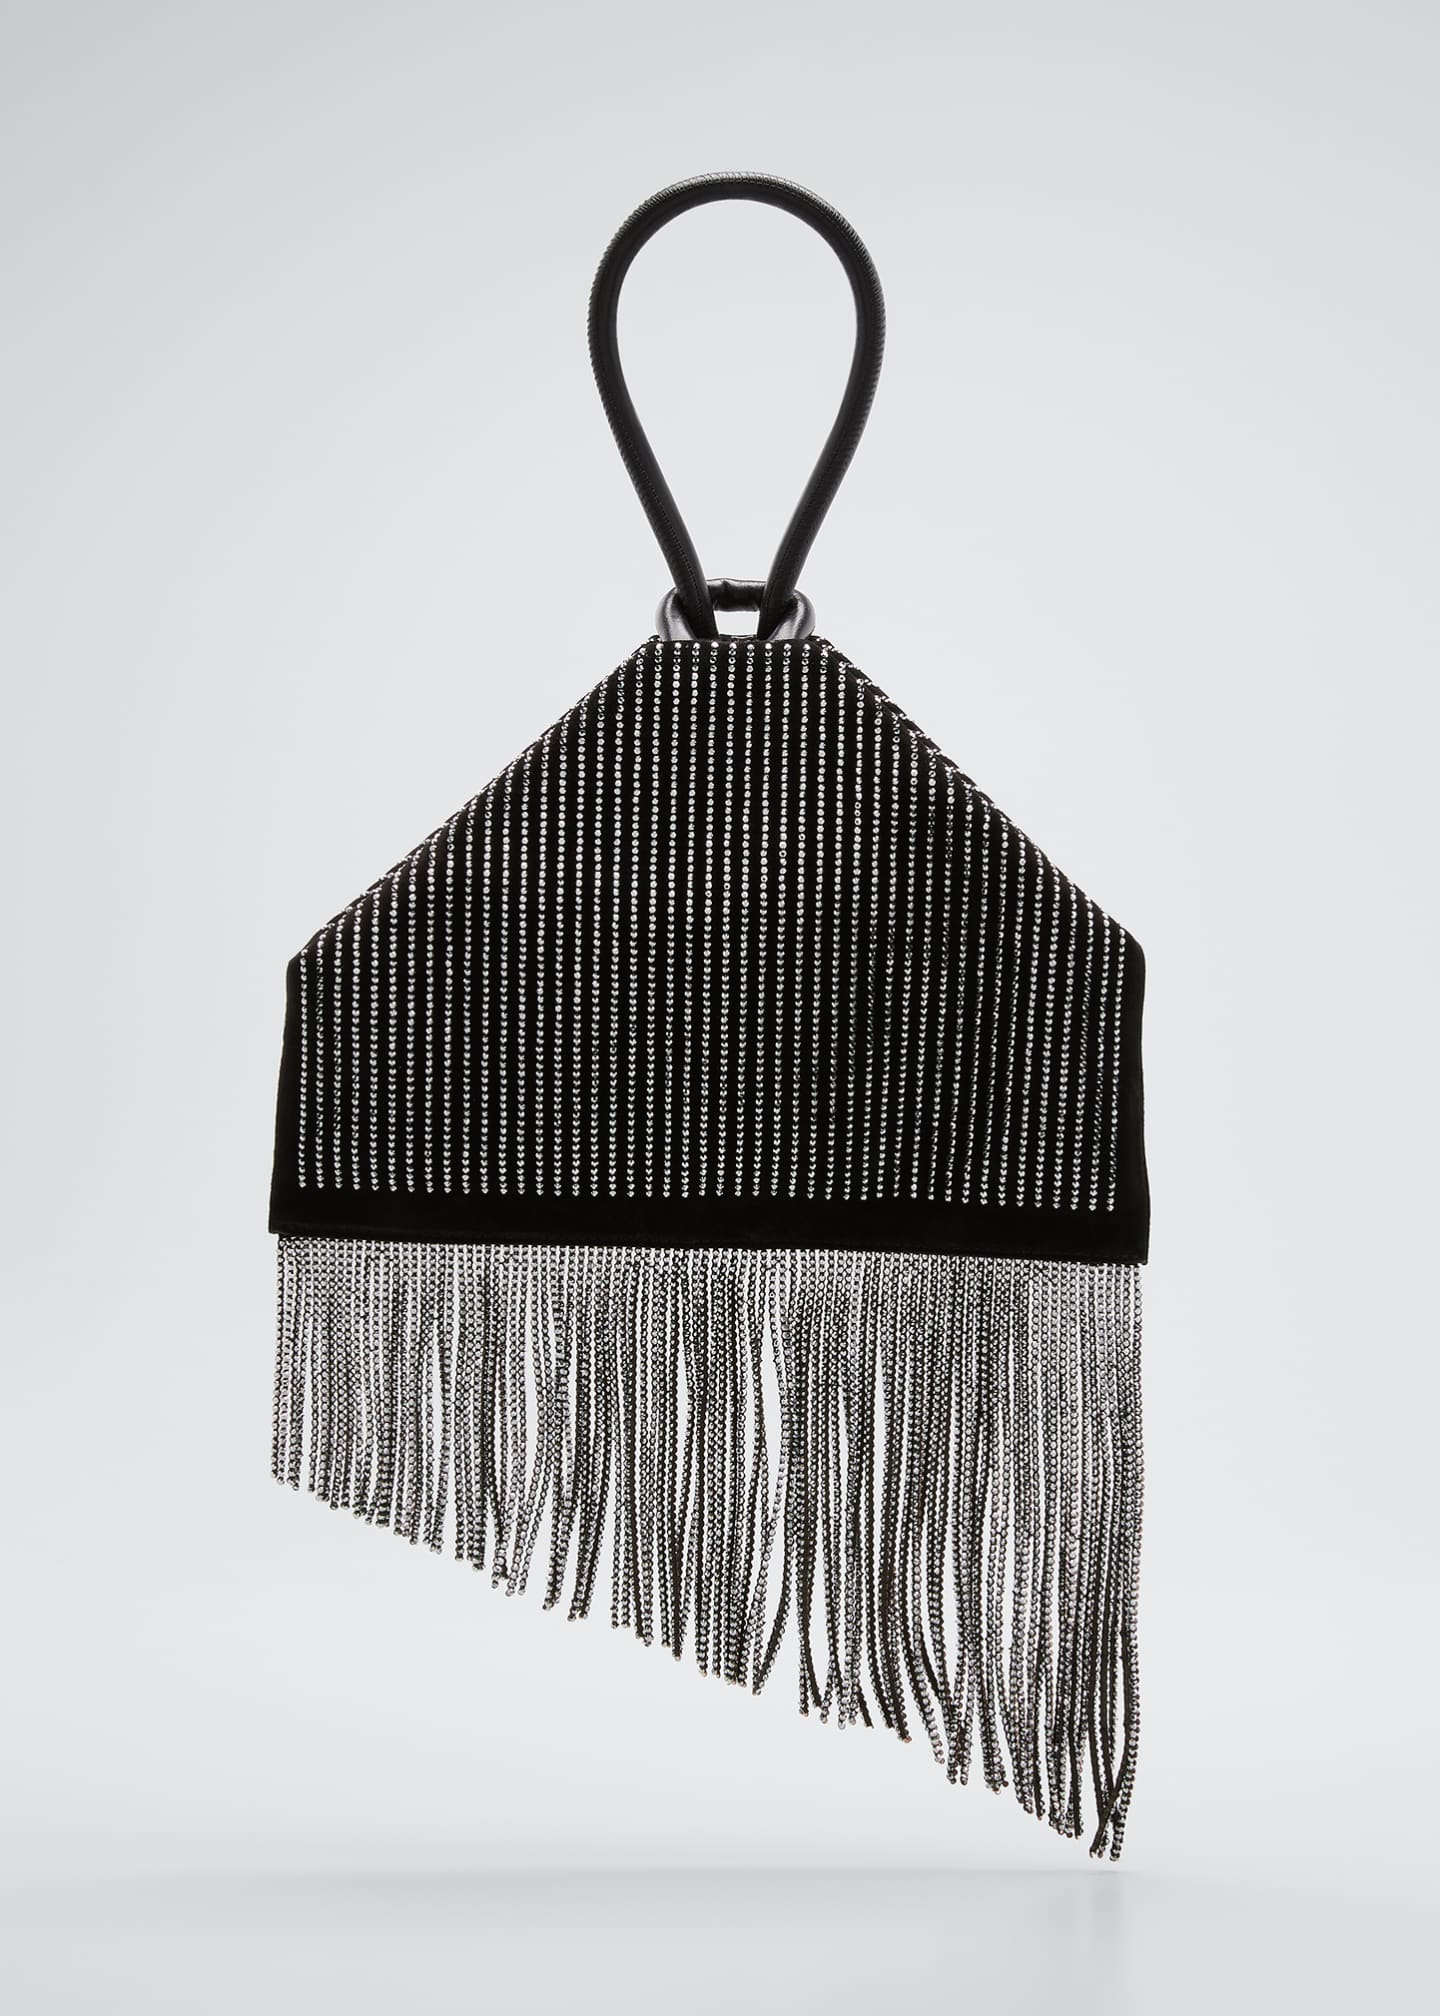 Image 1 of 5: Berlinguinio Strass Fringed Suede Clutch Bag